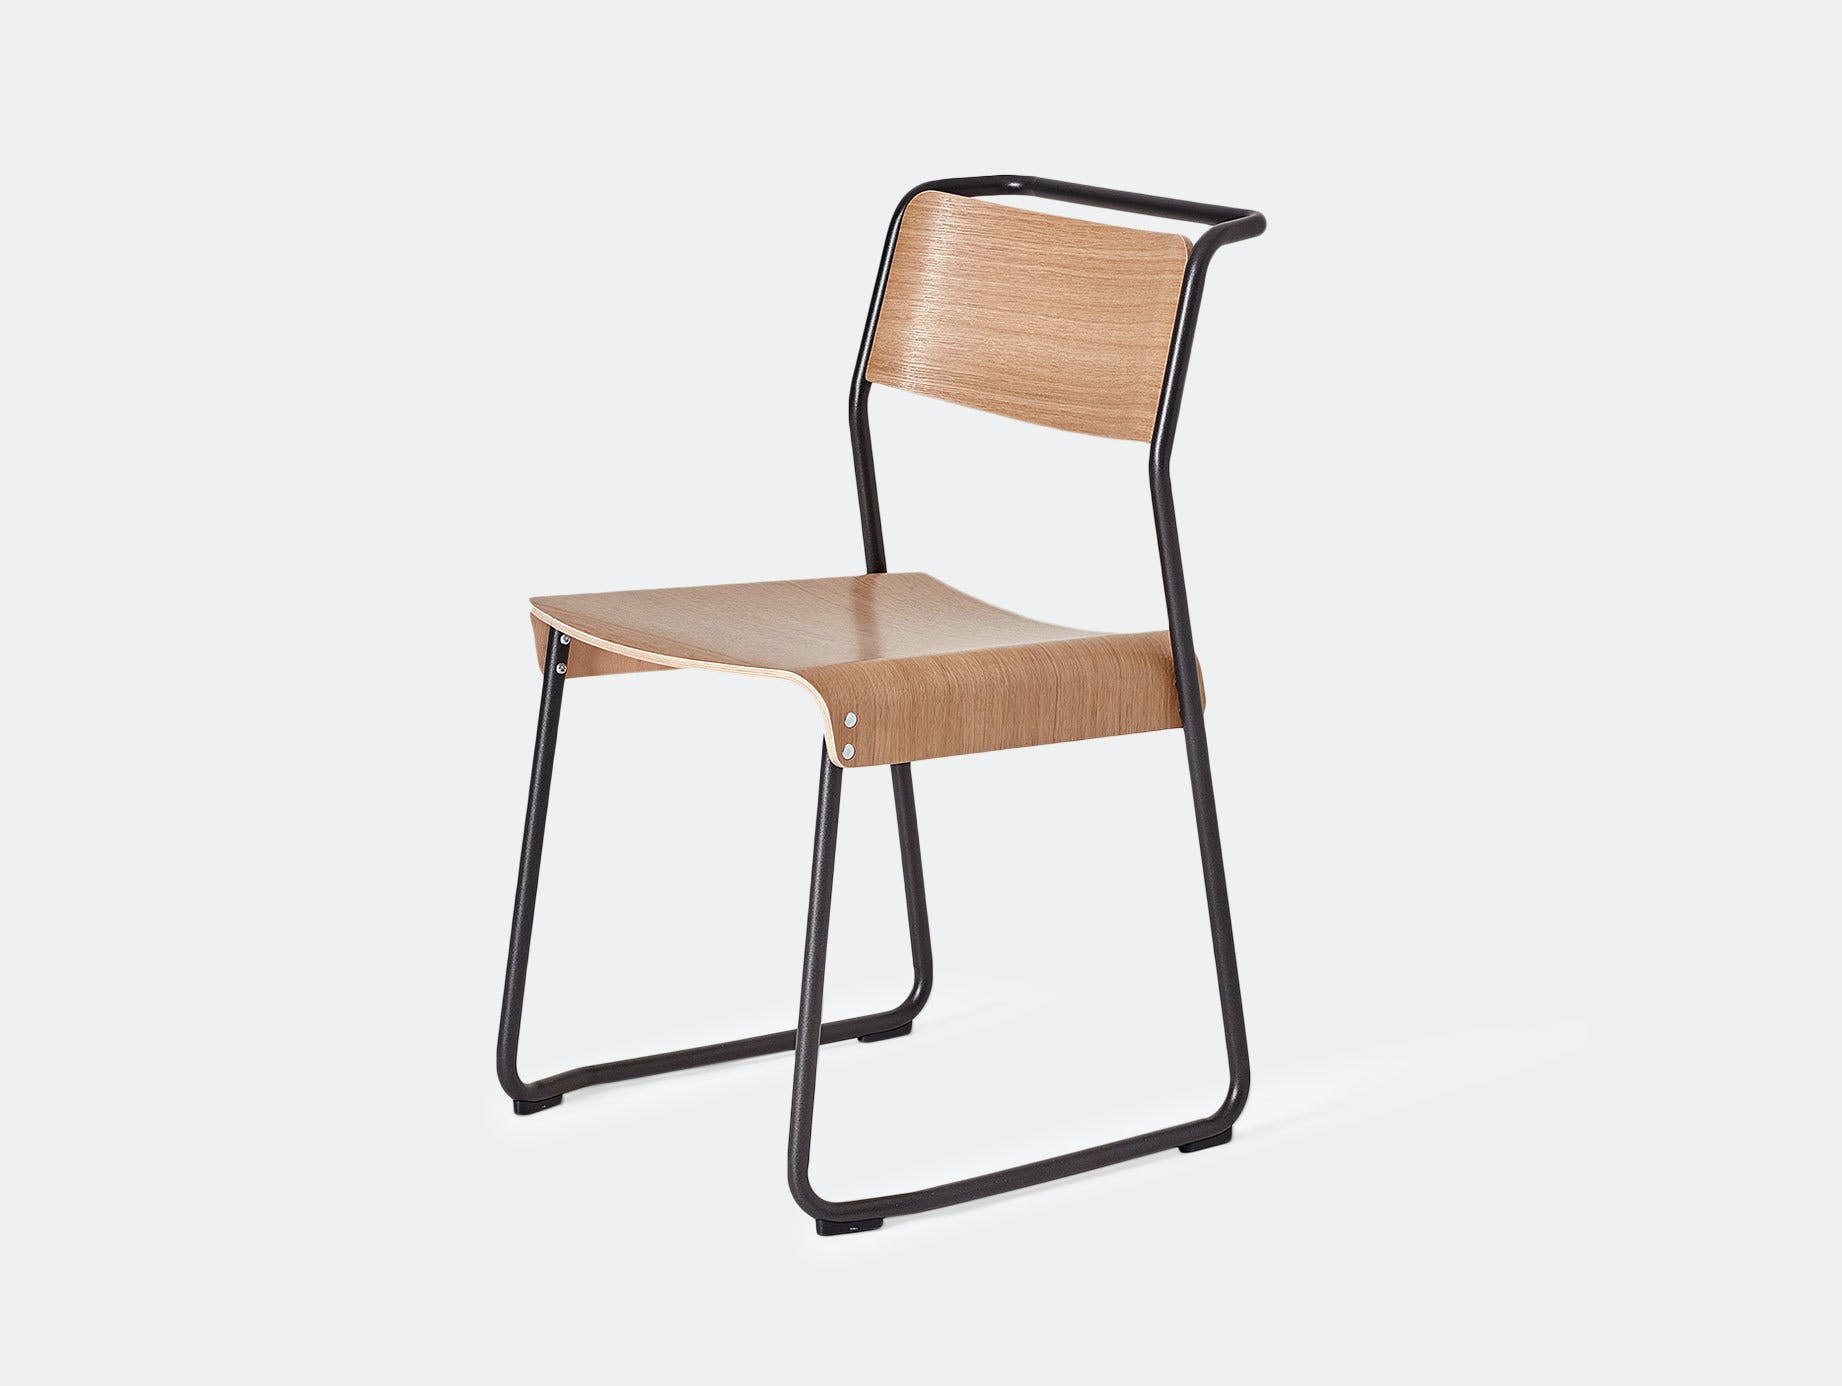 Very Good And Proper Canteen Utility Chair Klauser Carpenter